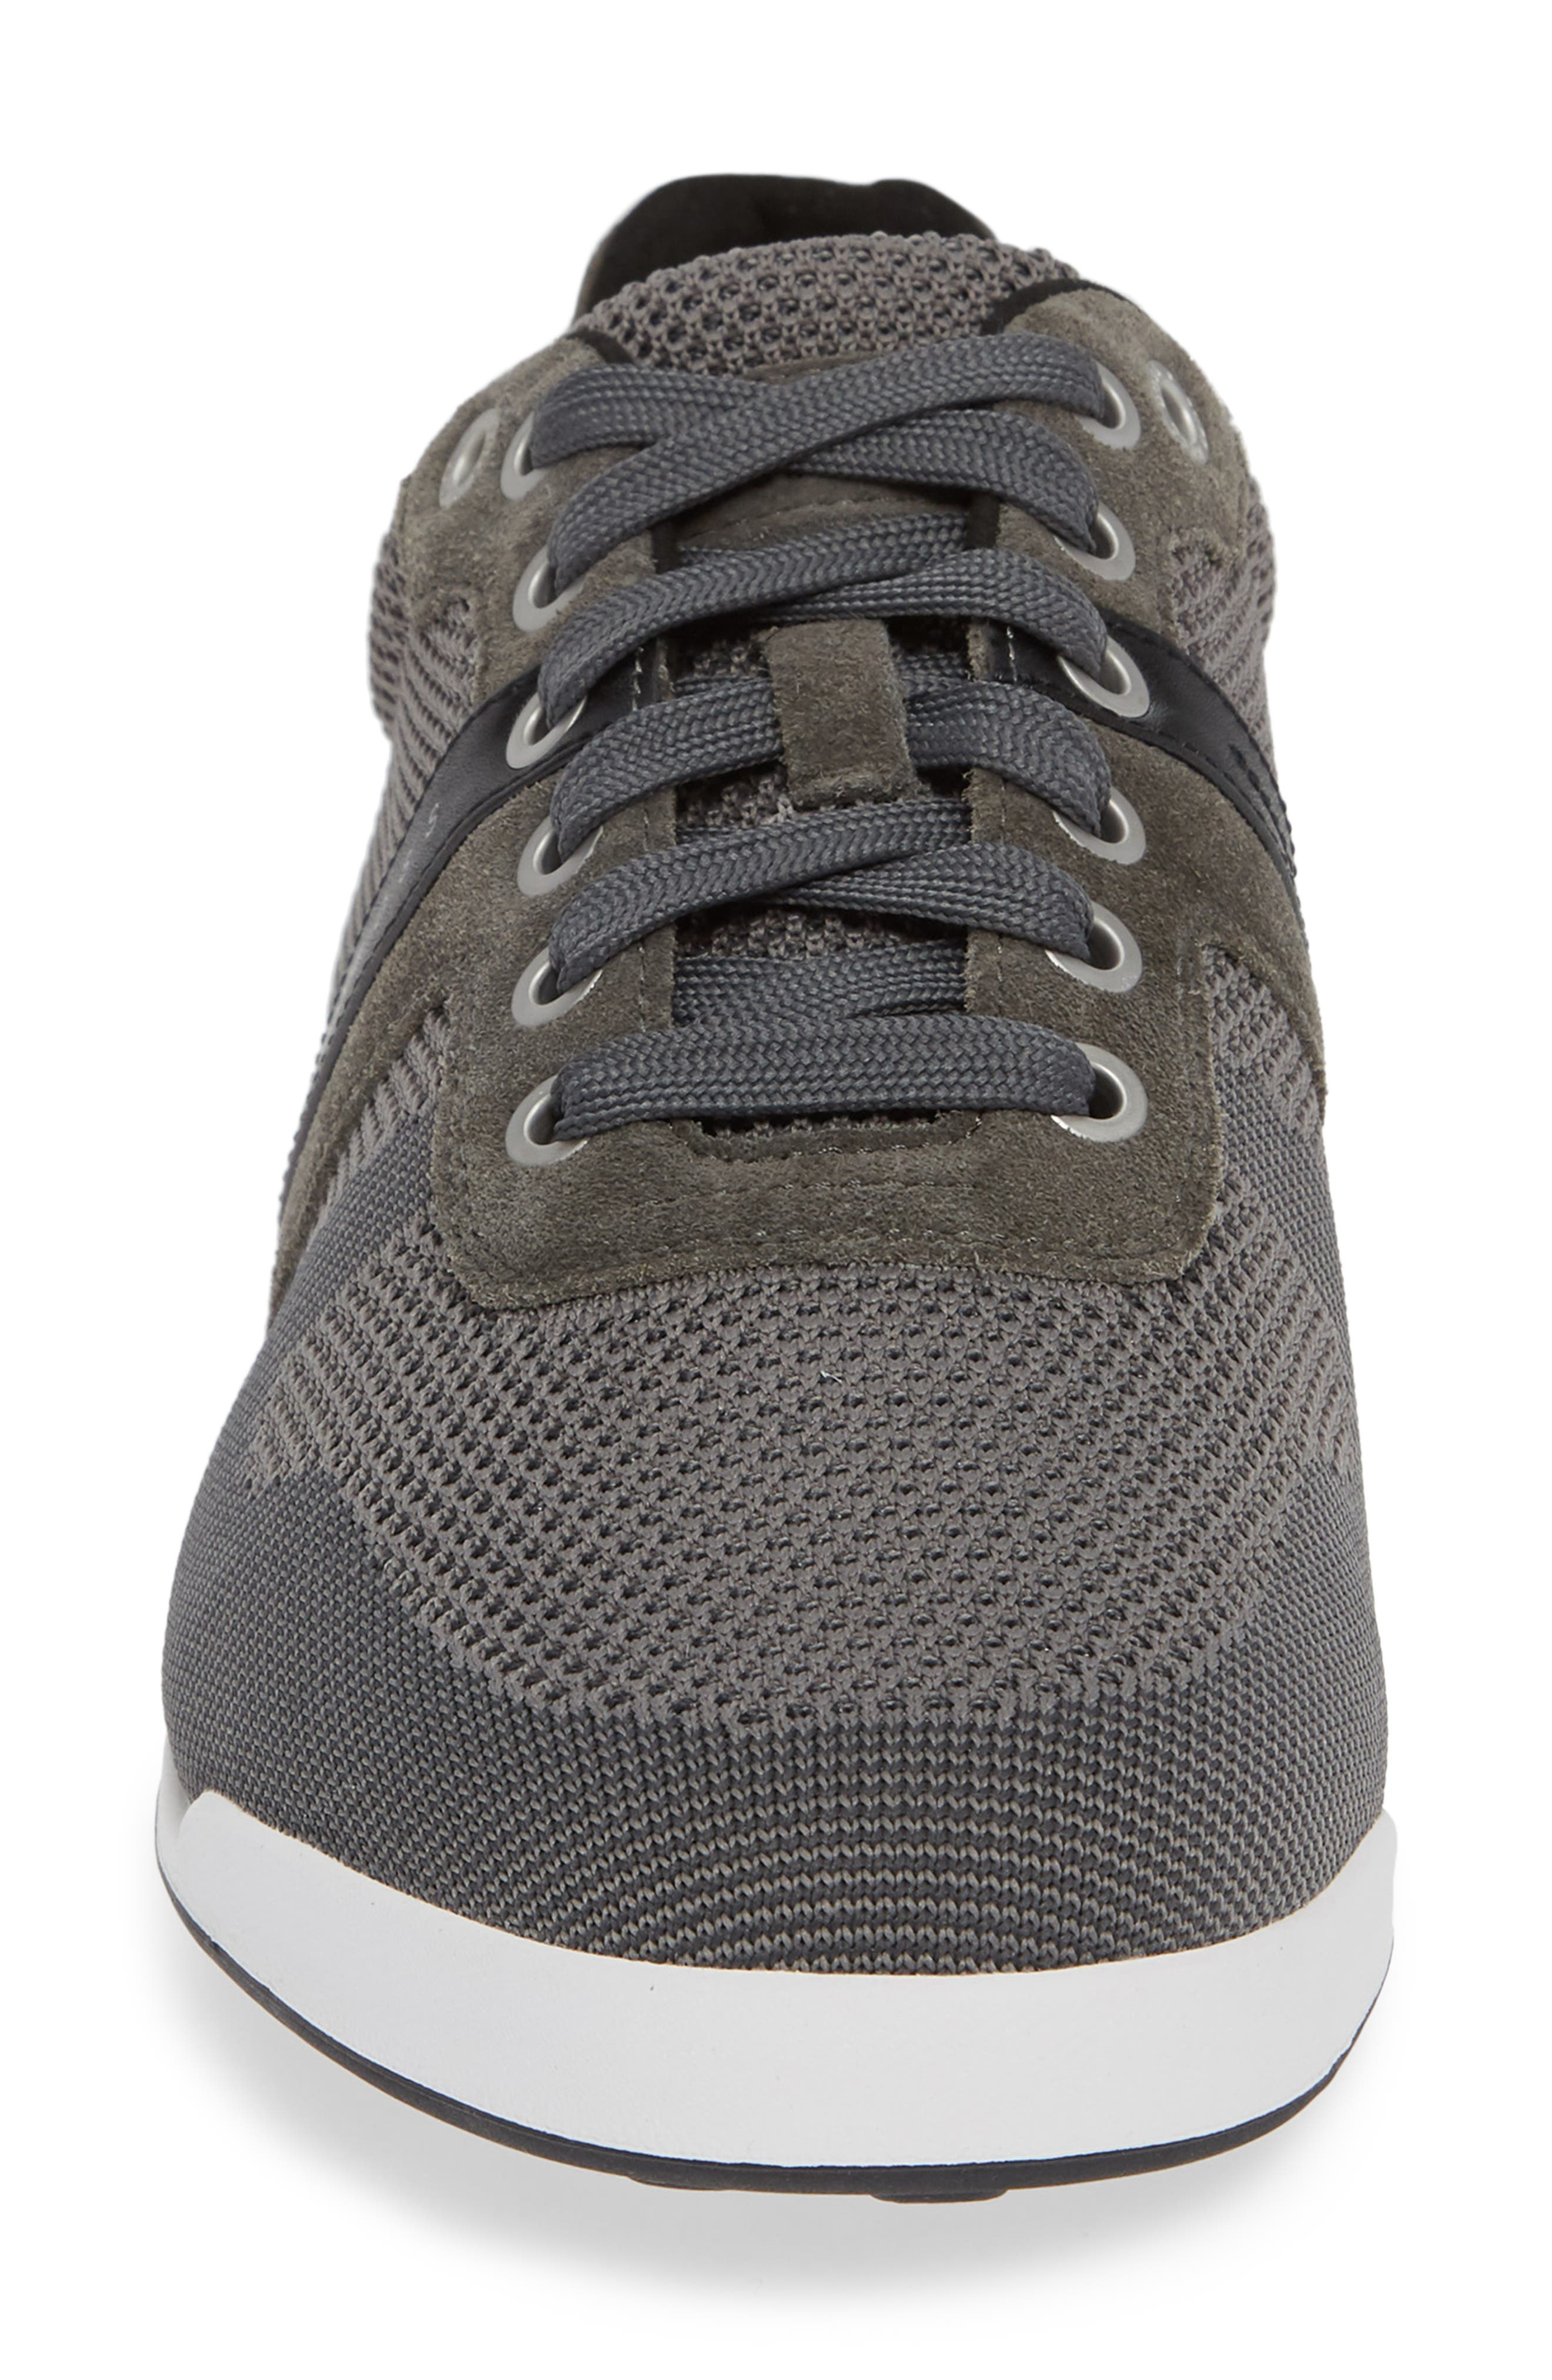 Hugo Boss Arkansas Lace-Up Sneaker,                             Alternate thumbnail 4, color,                             021